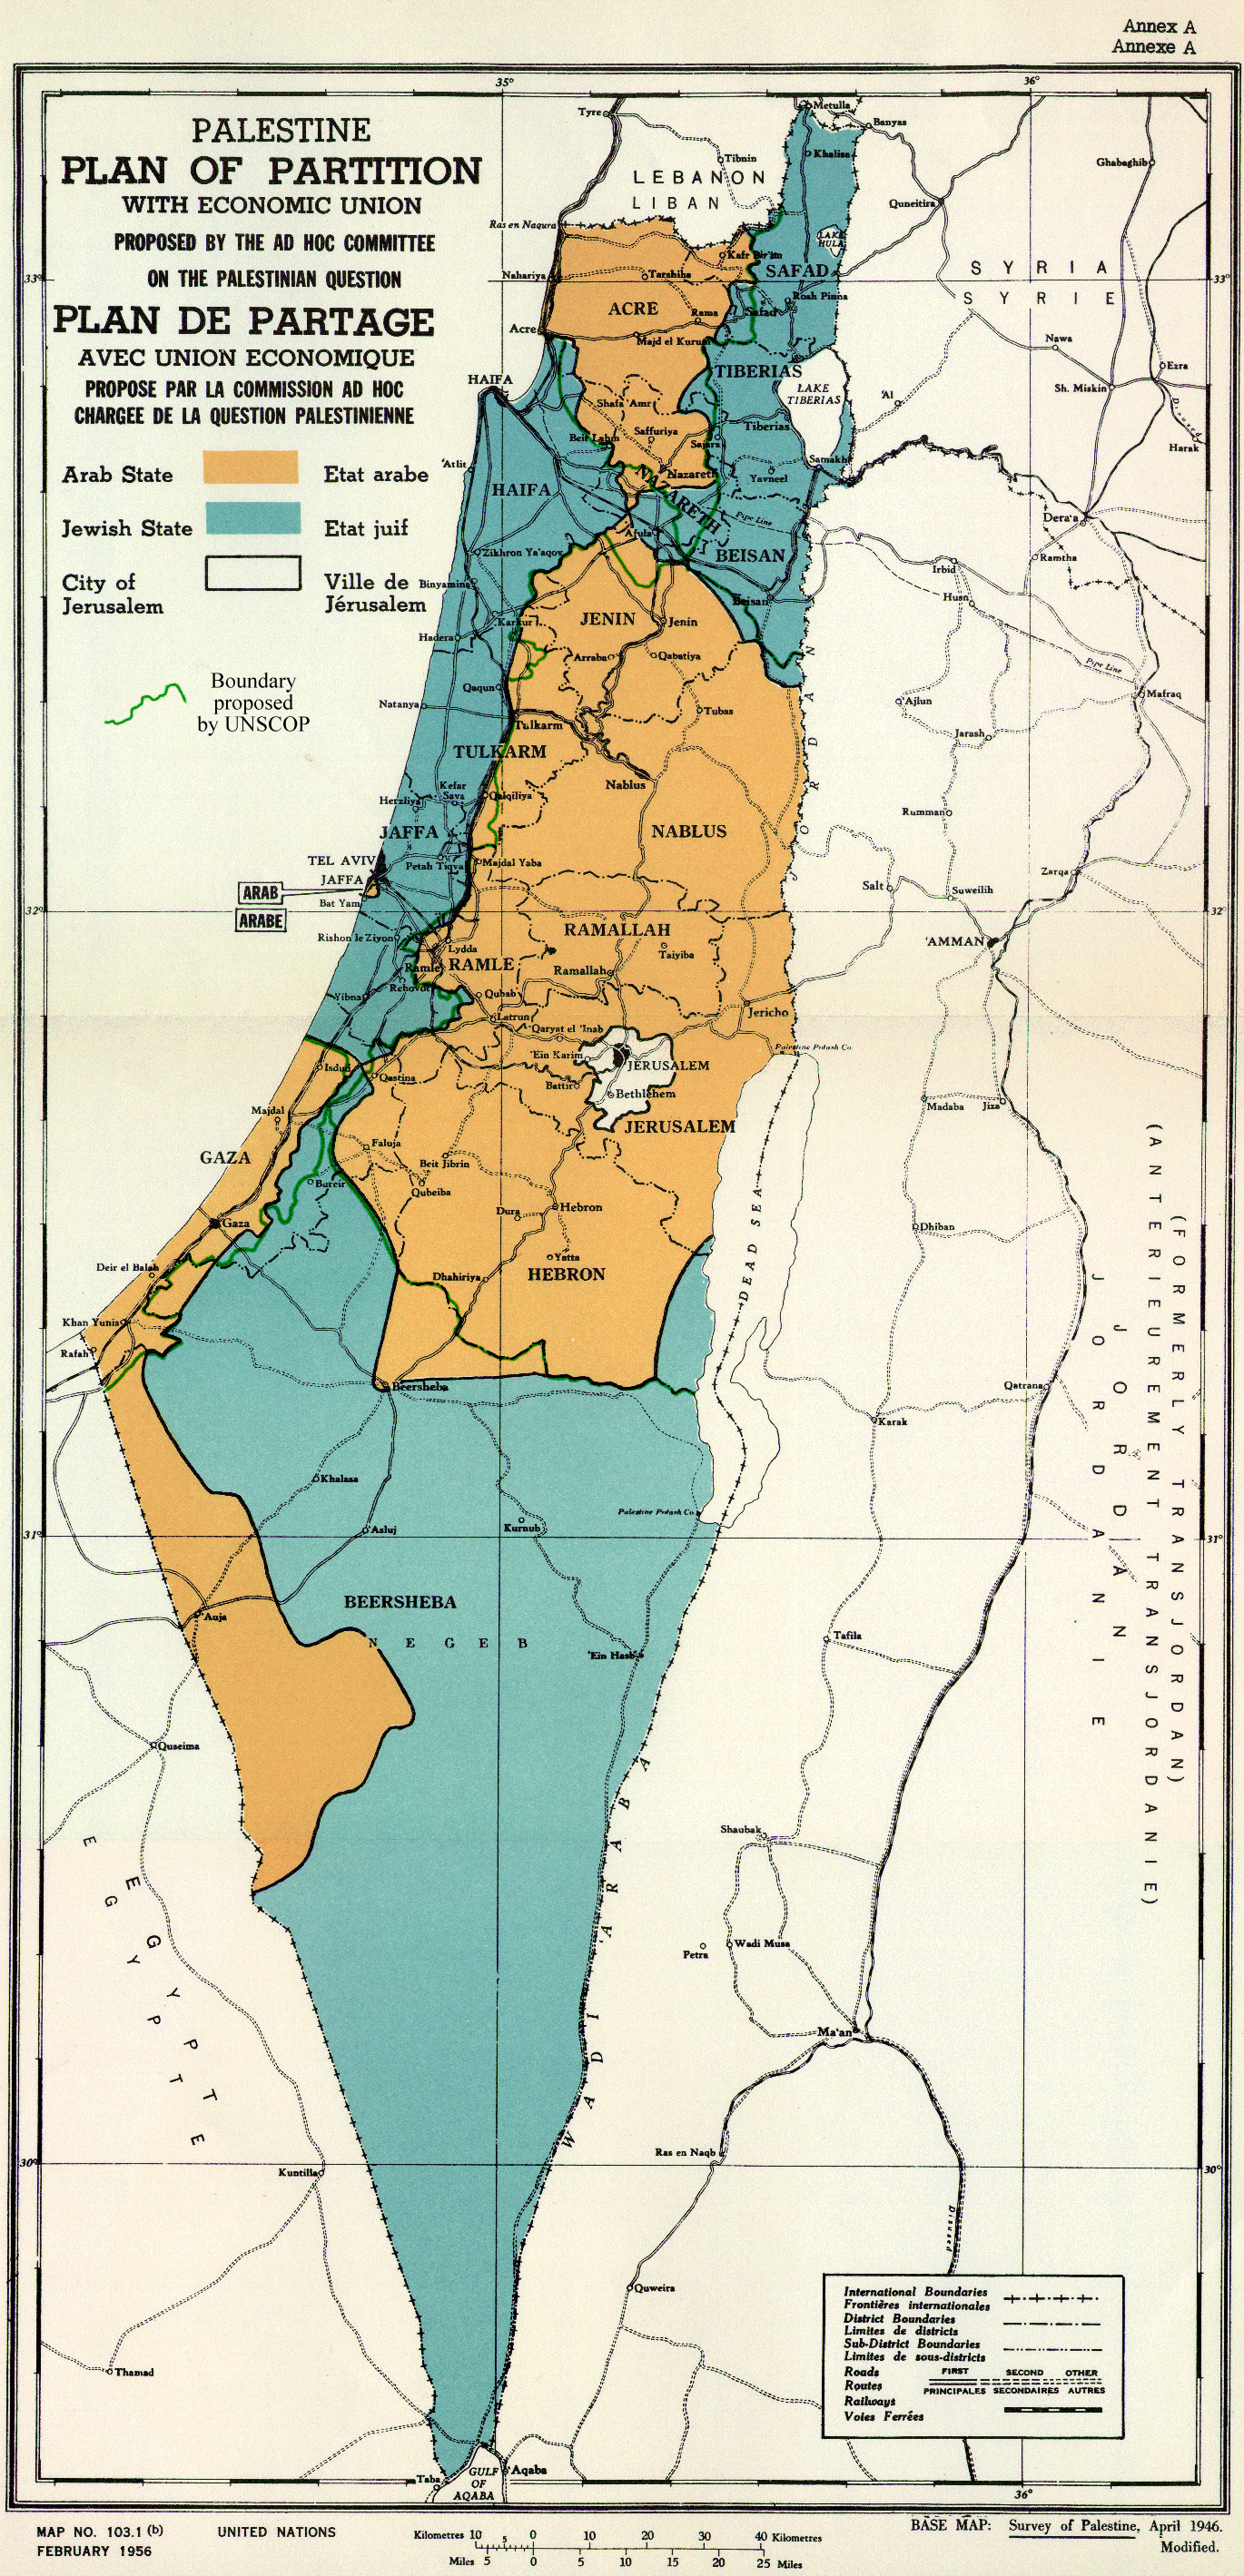 The 1947 U.N. partition plan whose passing led to the Palestine War, Israeli Independence, and the 1948 Arab-Israeli War.